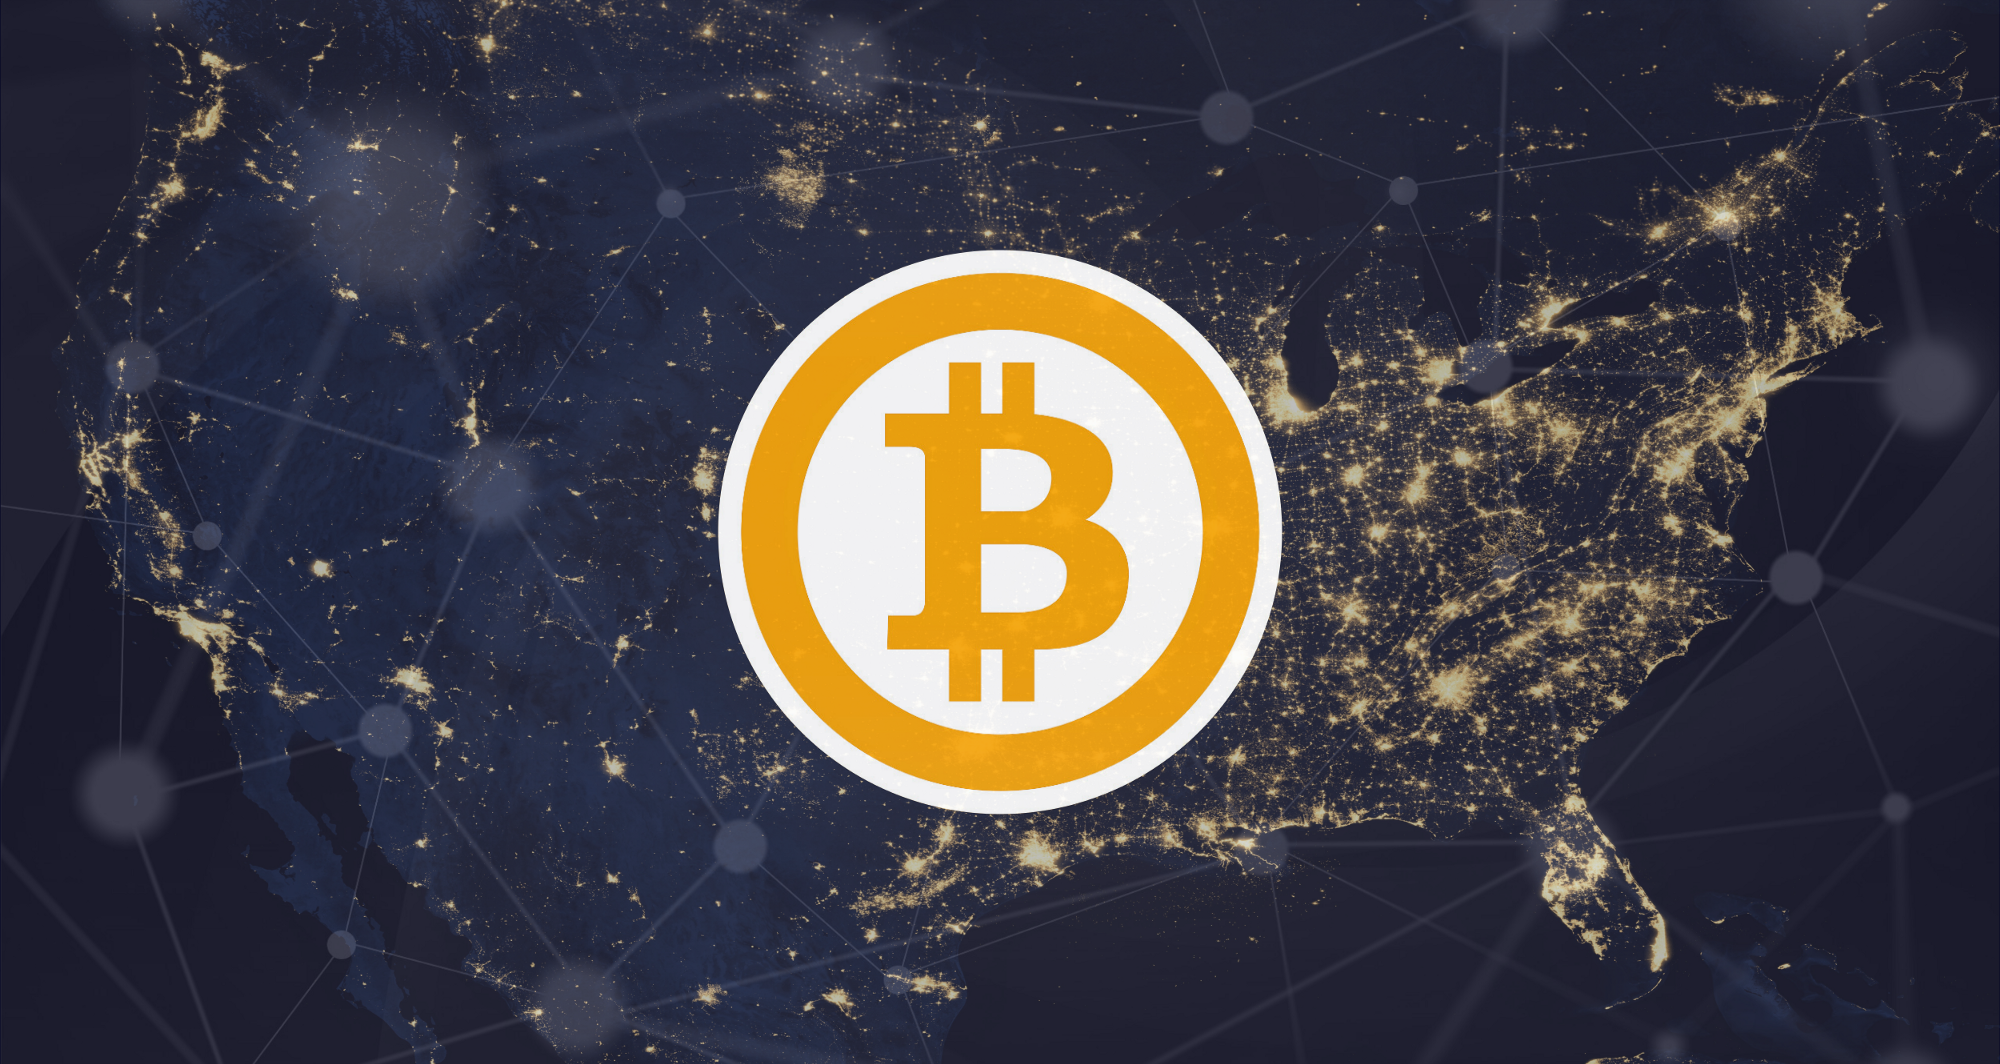 65 Bitcoin HD Wallpapers Background Images 2000x1064